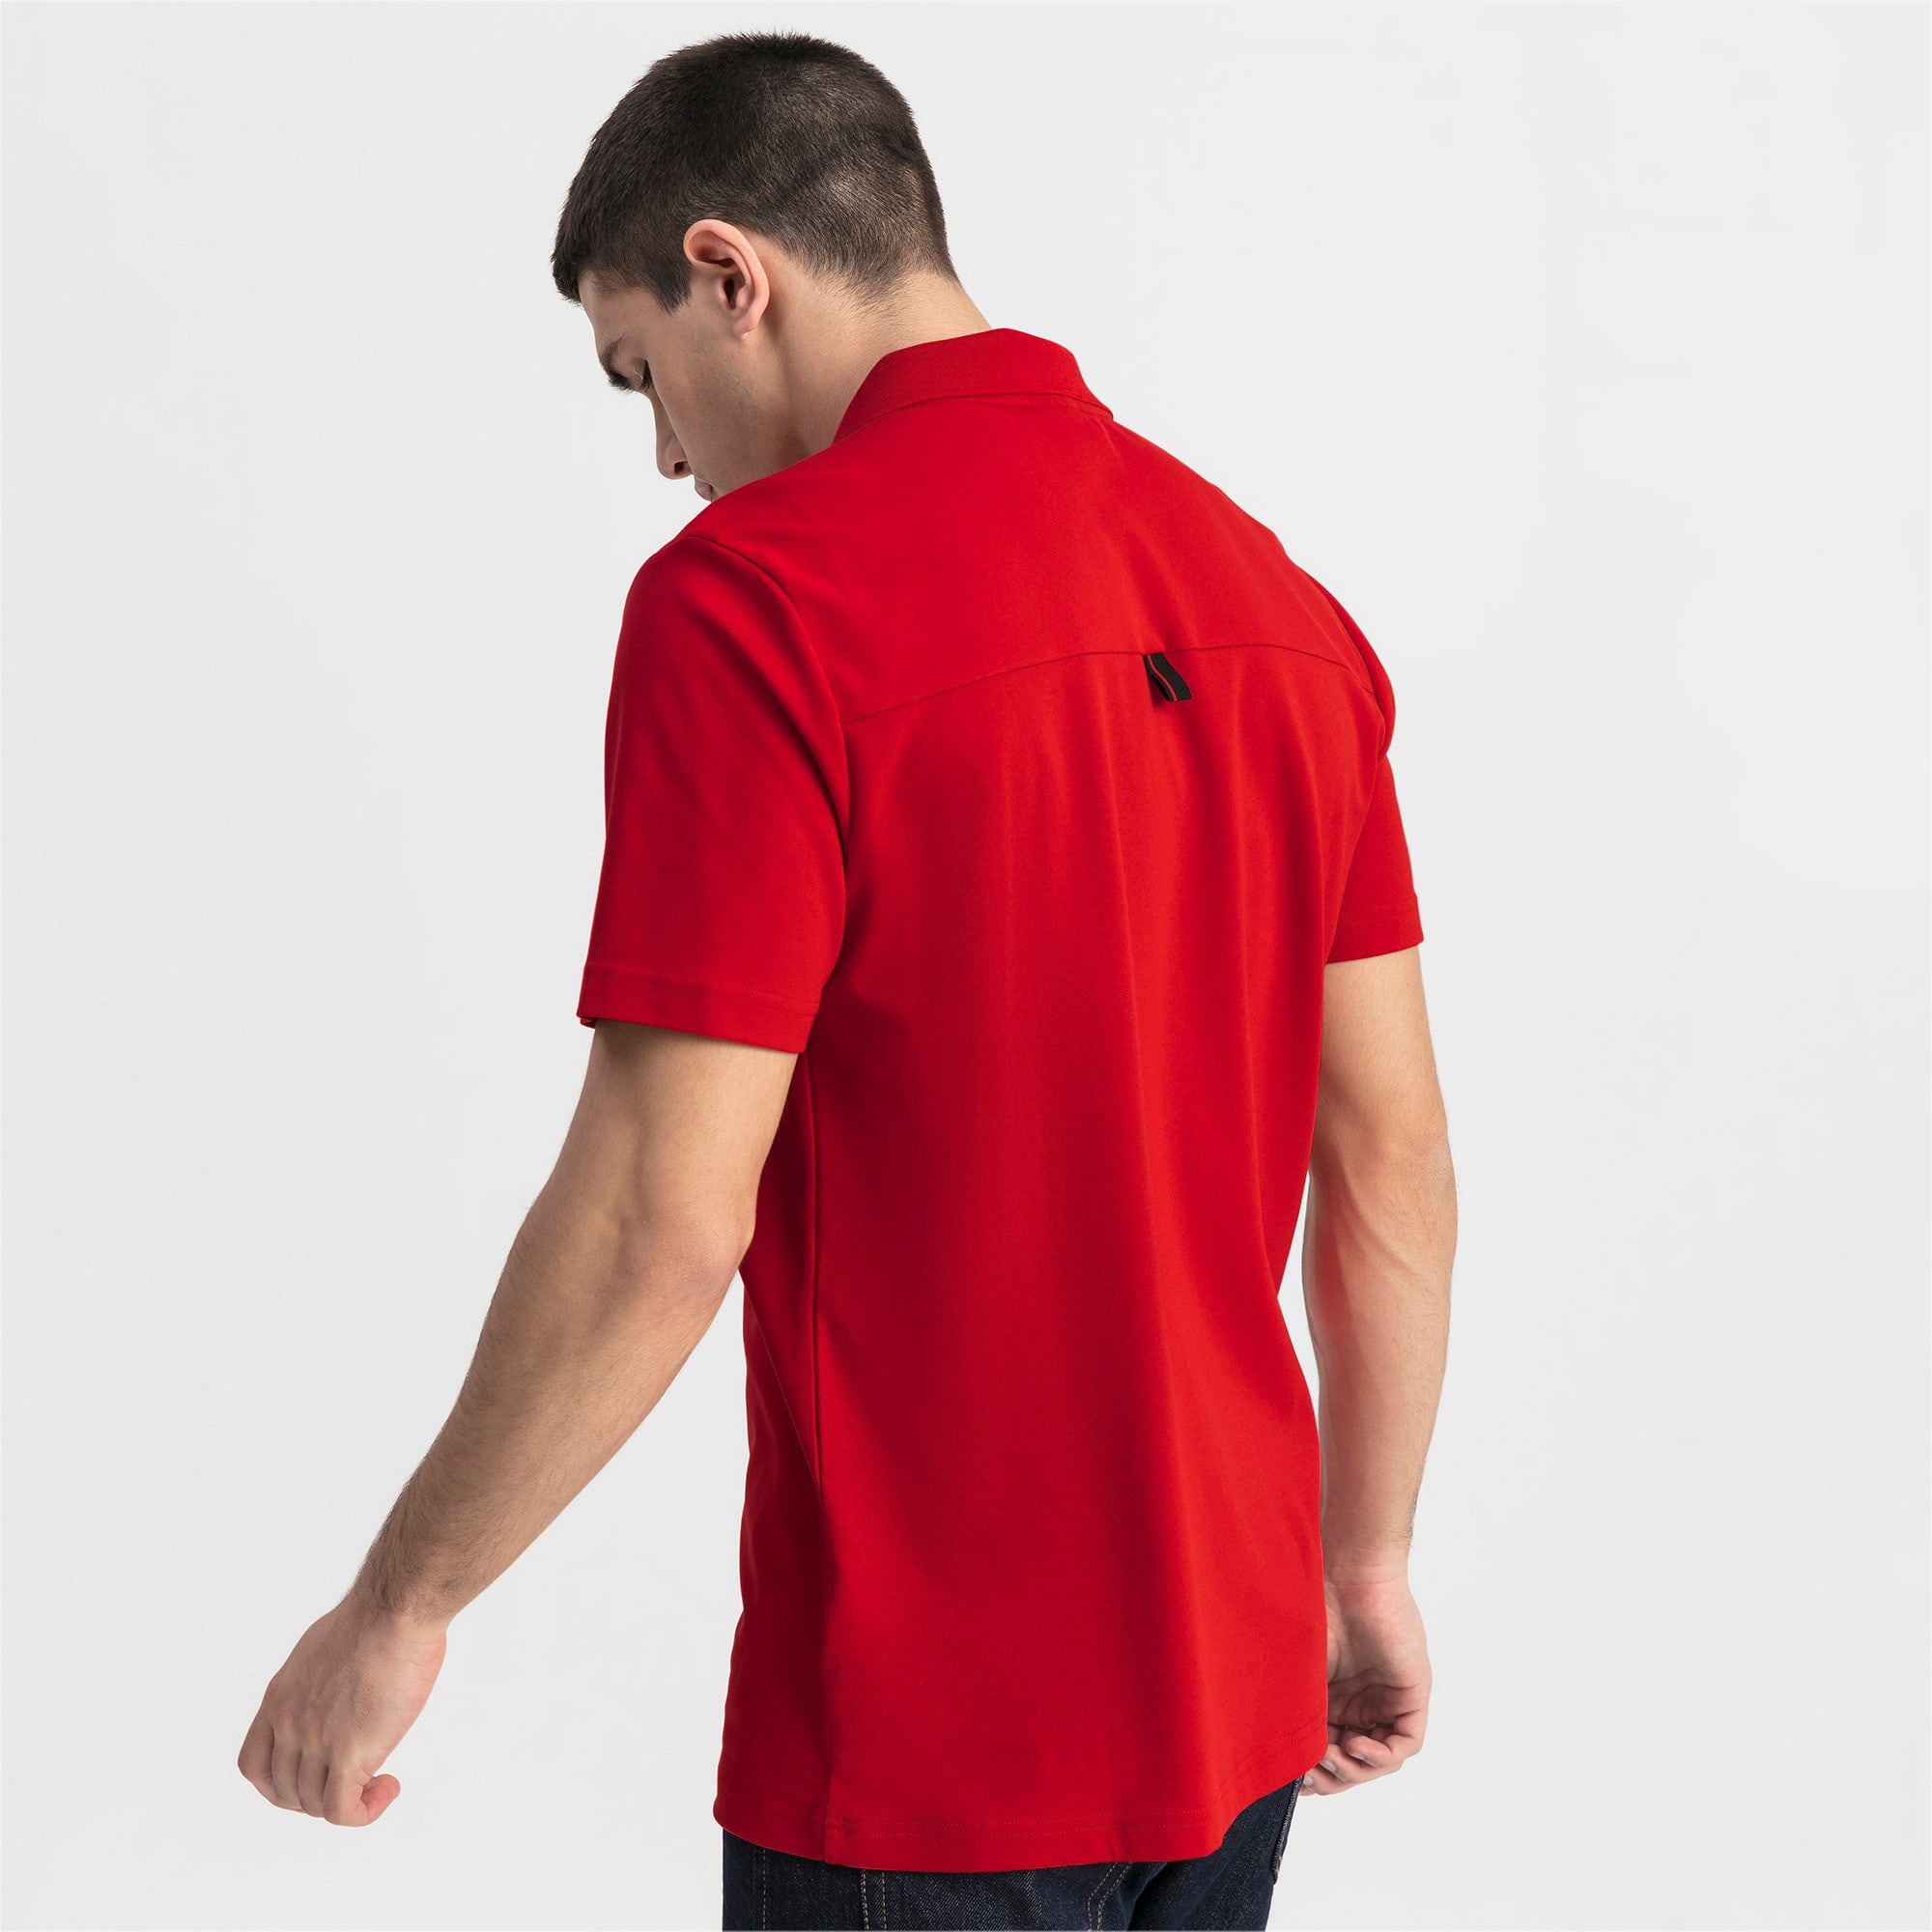 Thumbnail 2 of Ferrari Men's Polo Shirt, Rosso Corsa, medium